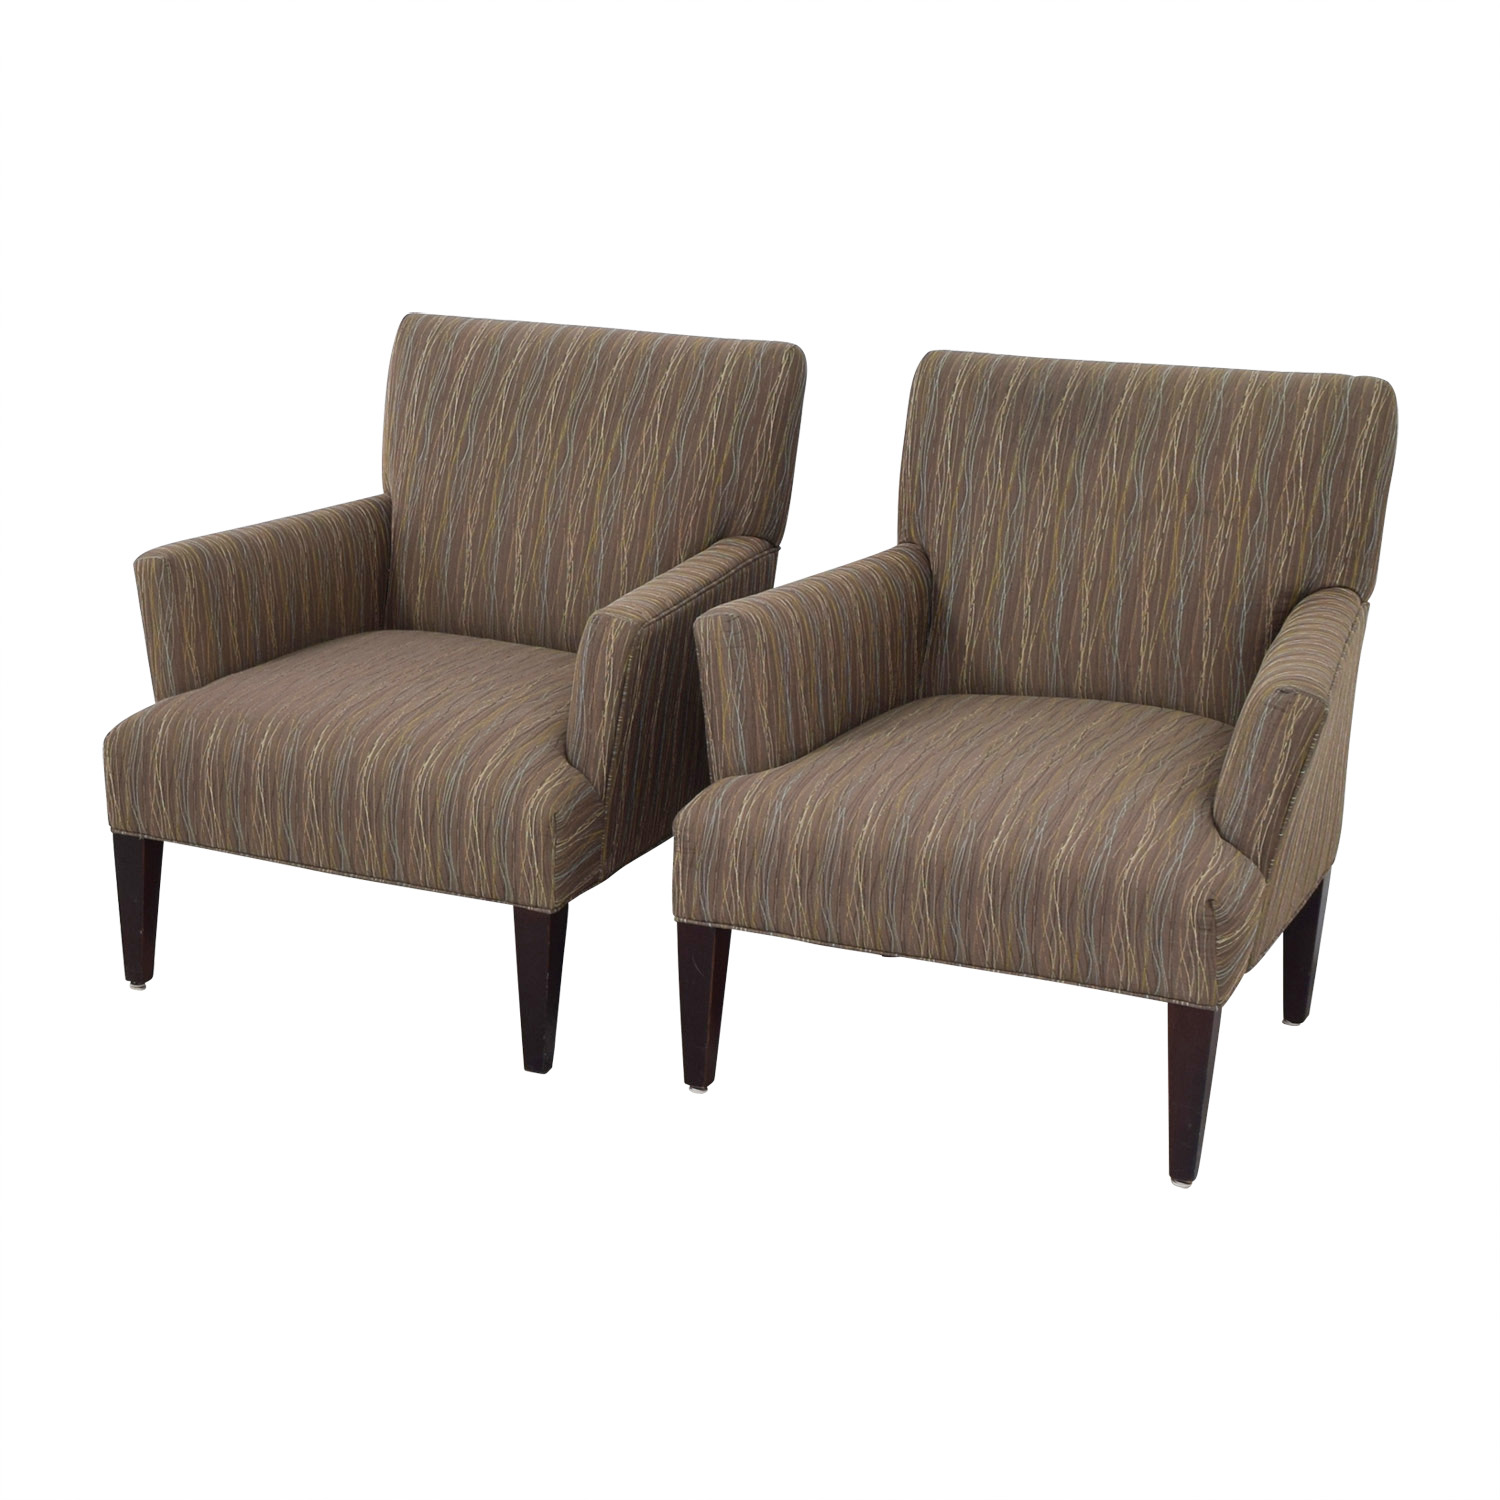 Room & Board Room & Board Multi-Colored Patterned Armchairs price